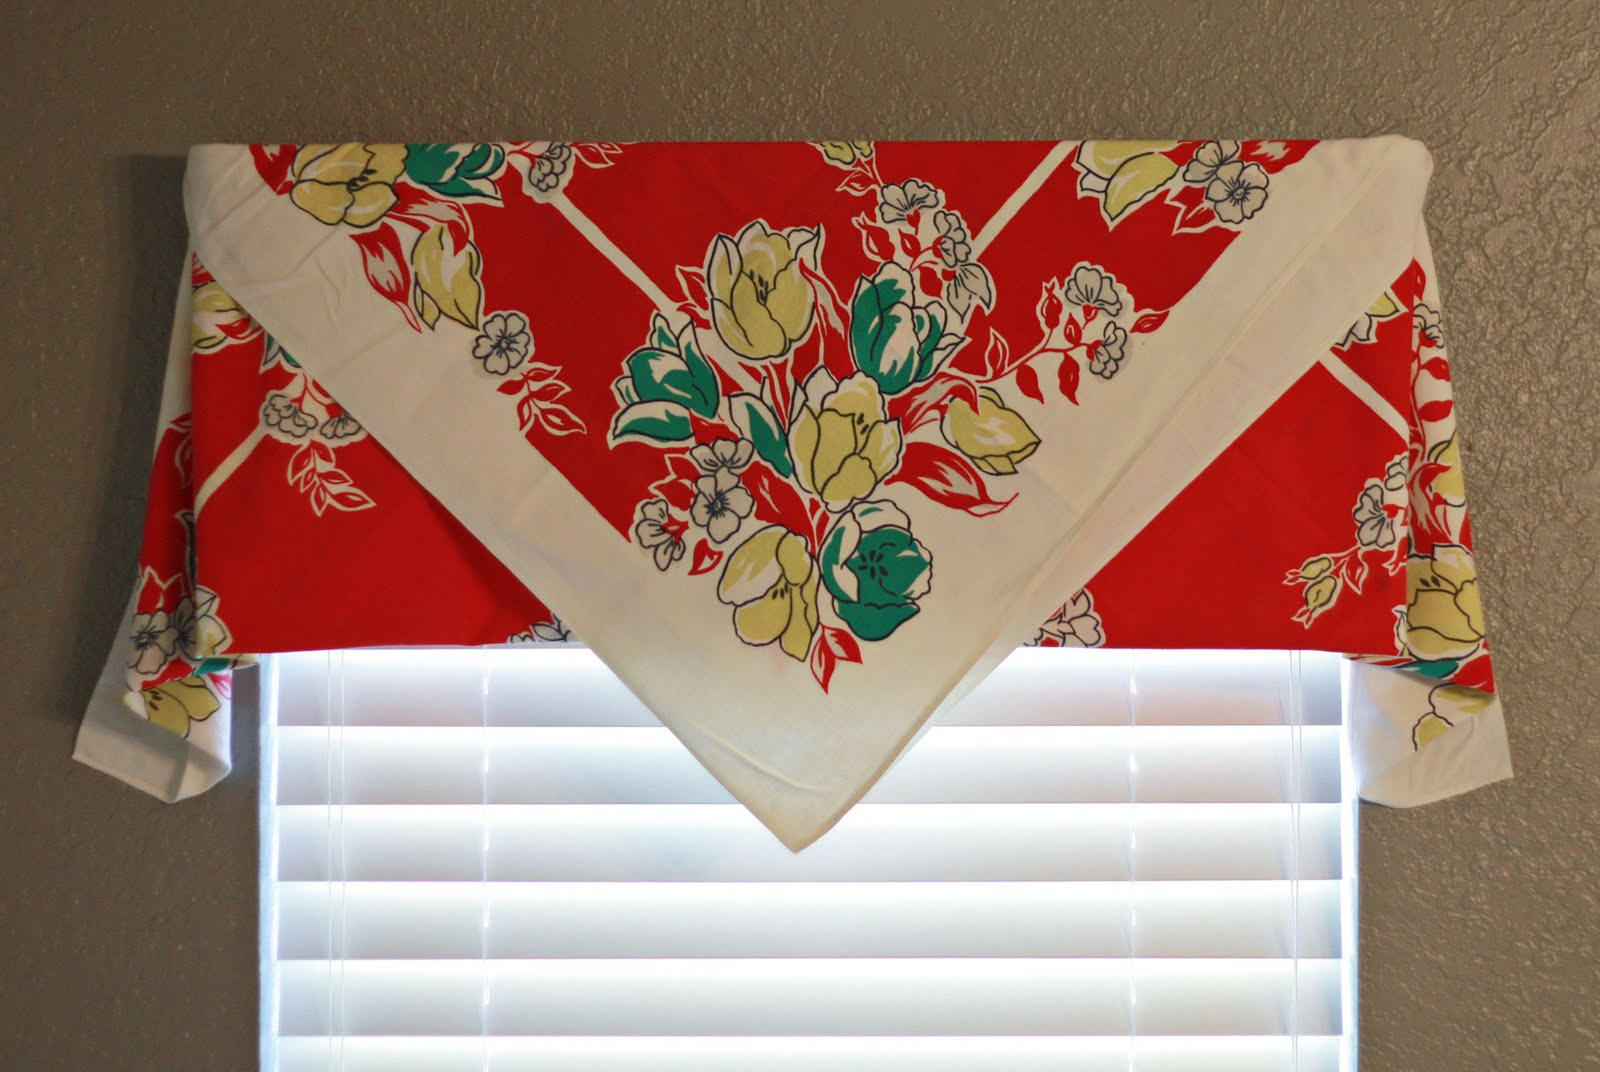 Captivating Using Vintage Tablecloths Part 1: EASY CURTAINS